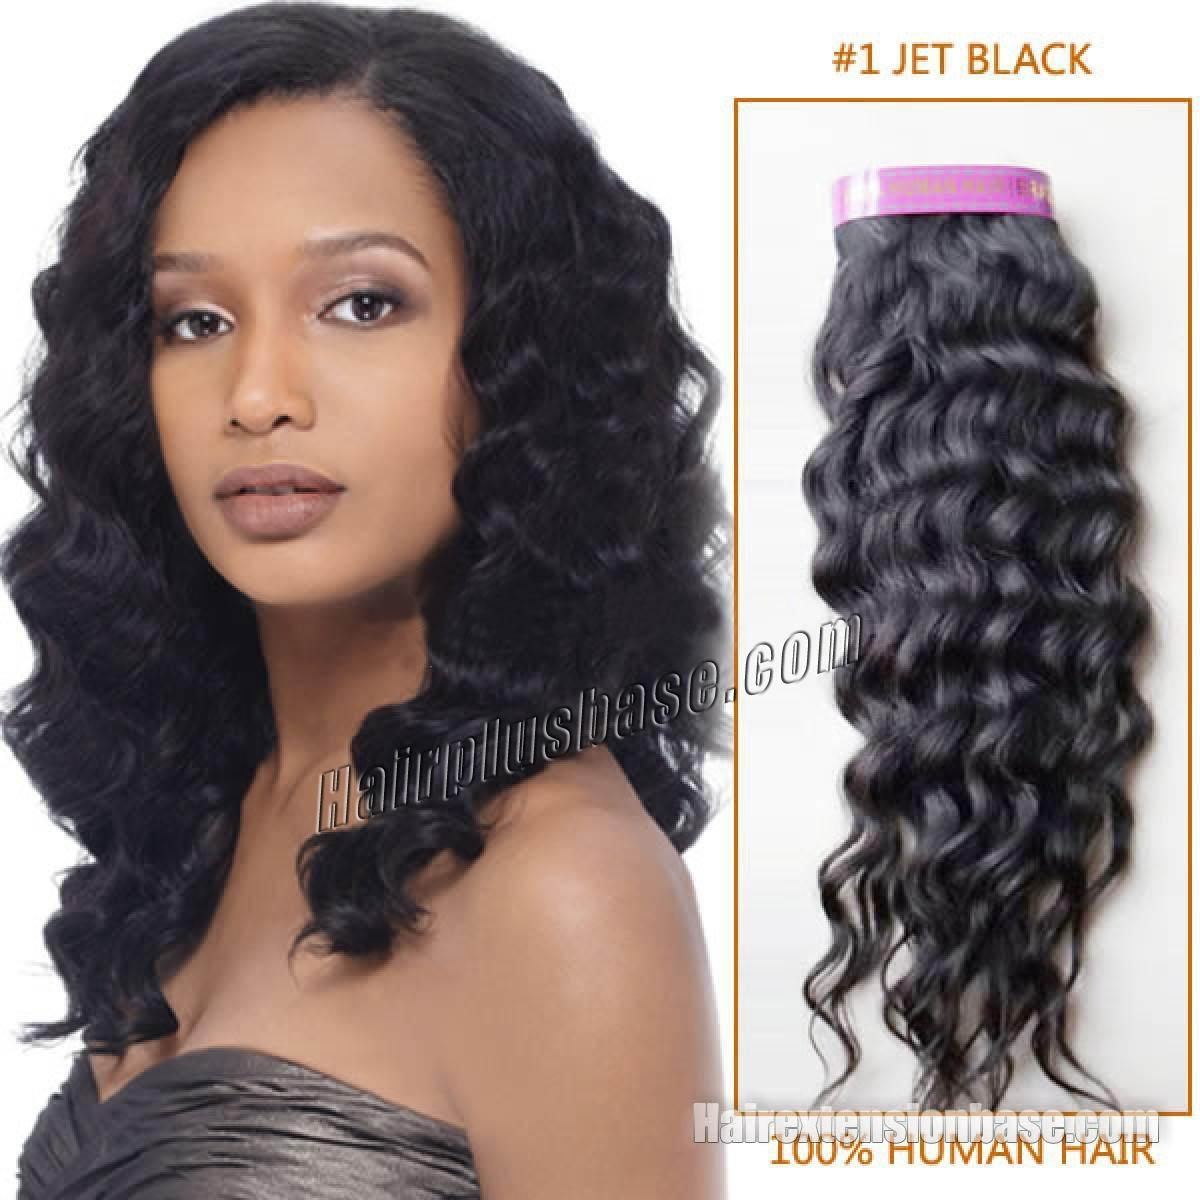 10 Inch 1 Jet Black Curly Indian Remy Hair Wefts